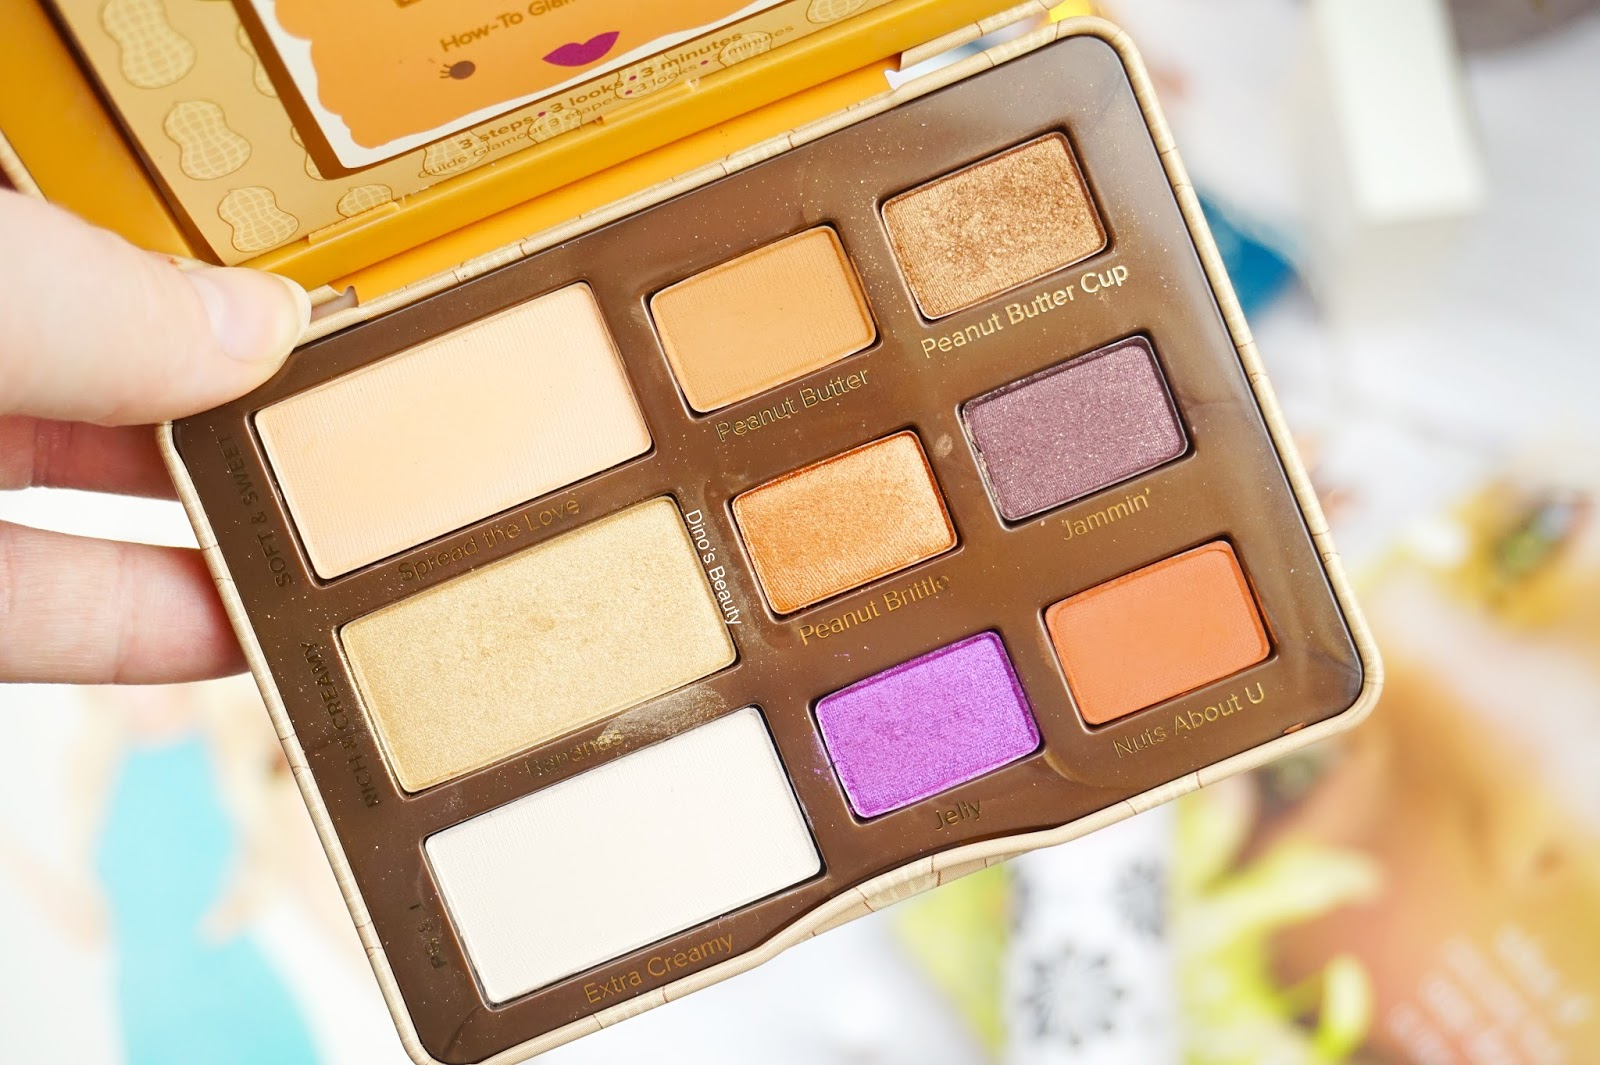 Beauty, Lifestyle, Beauty Bloggers, Bloggers, Lifestyle Bloggers, 2016, 2016 Favourites, Too Faced, Too Faced Cosmetics, Peanut Butter, Jelly, Peanut Butter and Jelly, Eyeshadow, Eyeshadow Palette